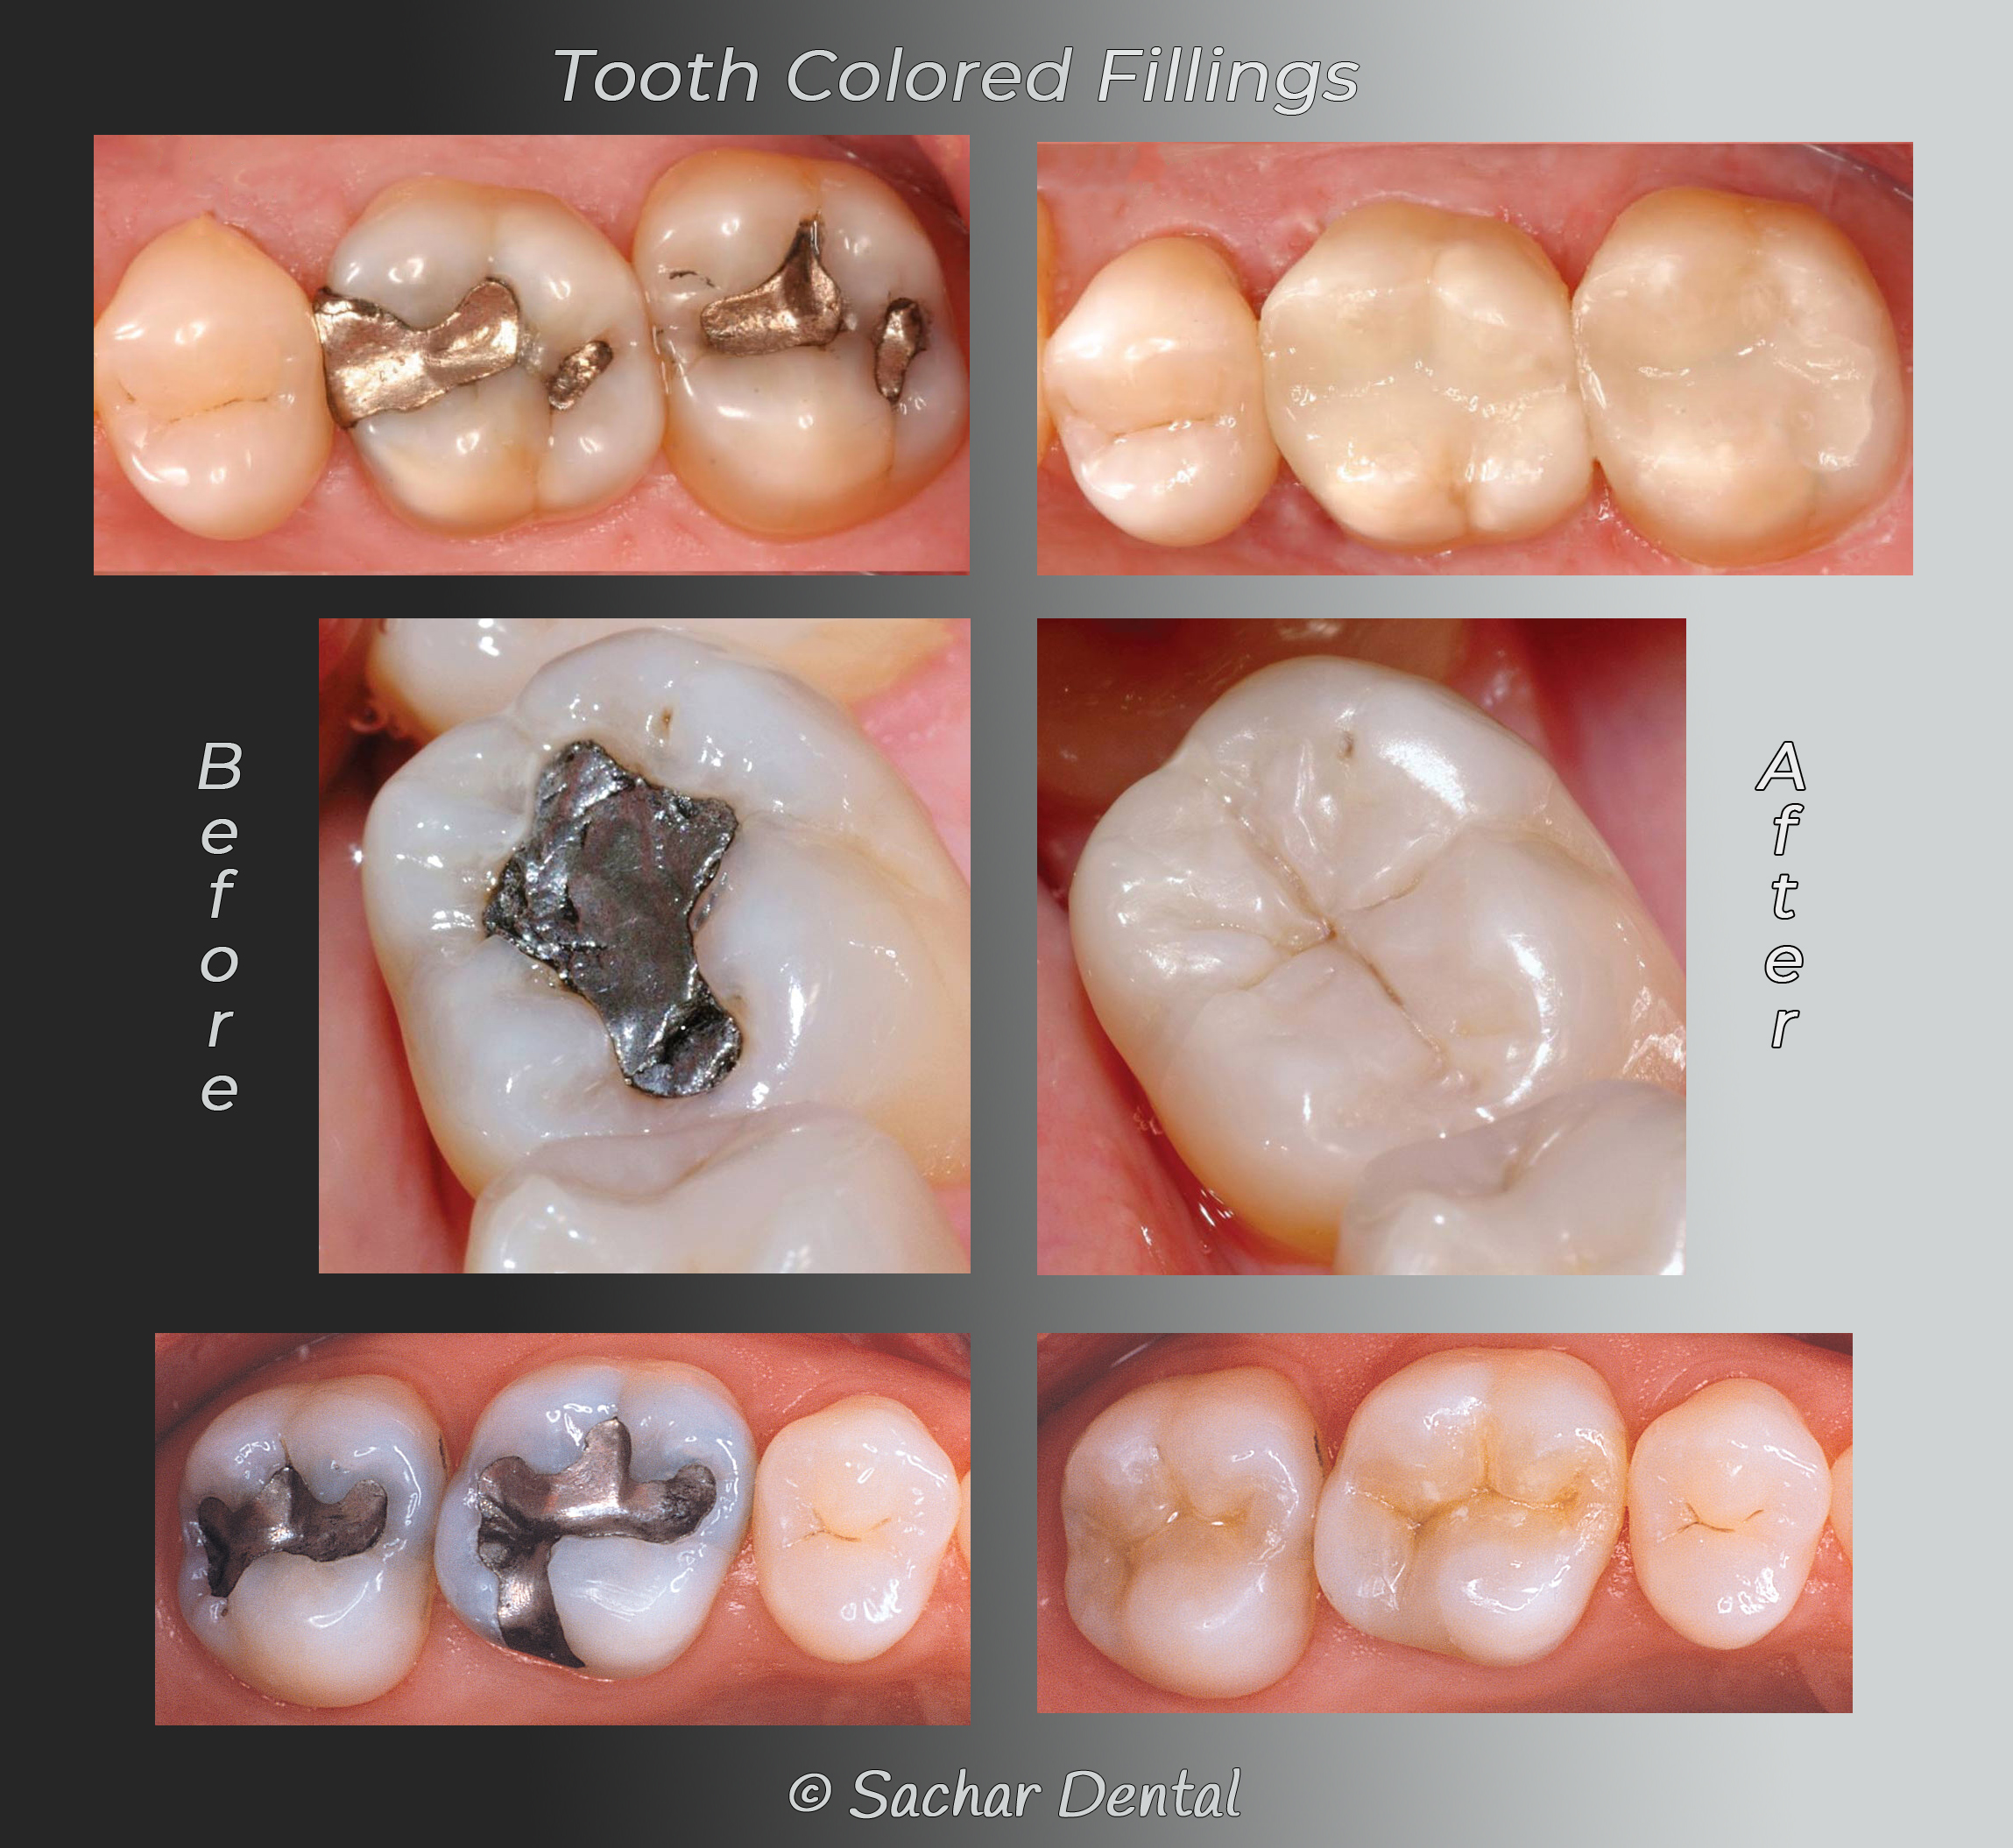 Picture of before and after replacing metal fillings with tooth colored fillings